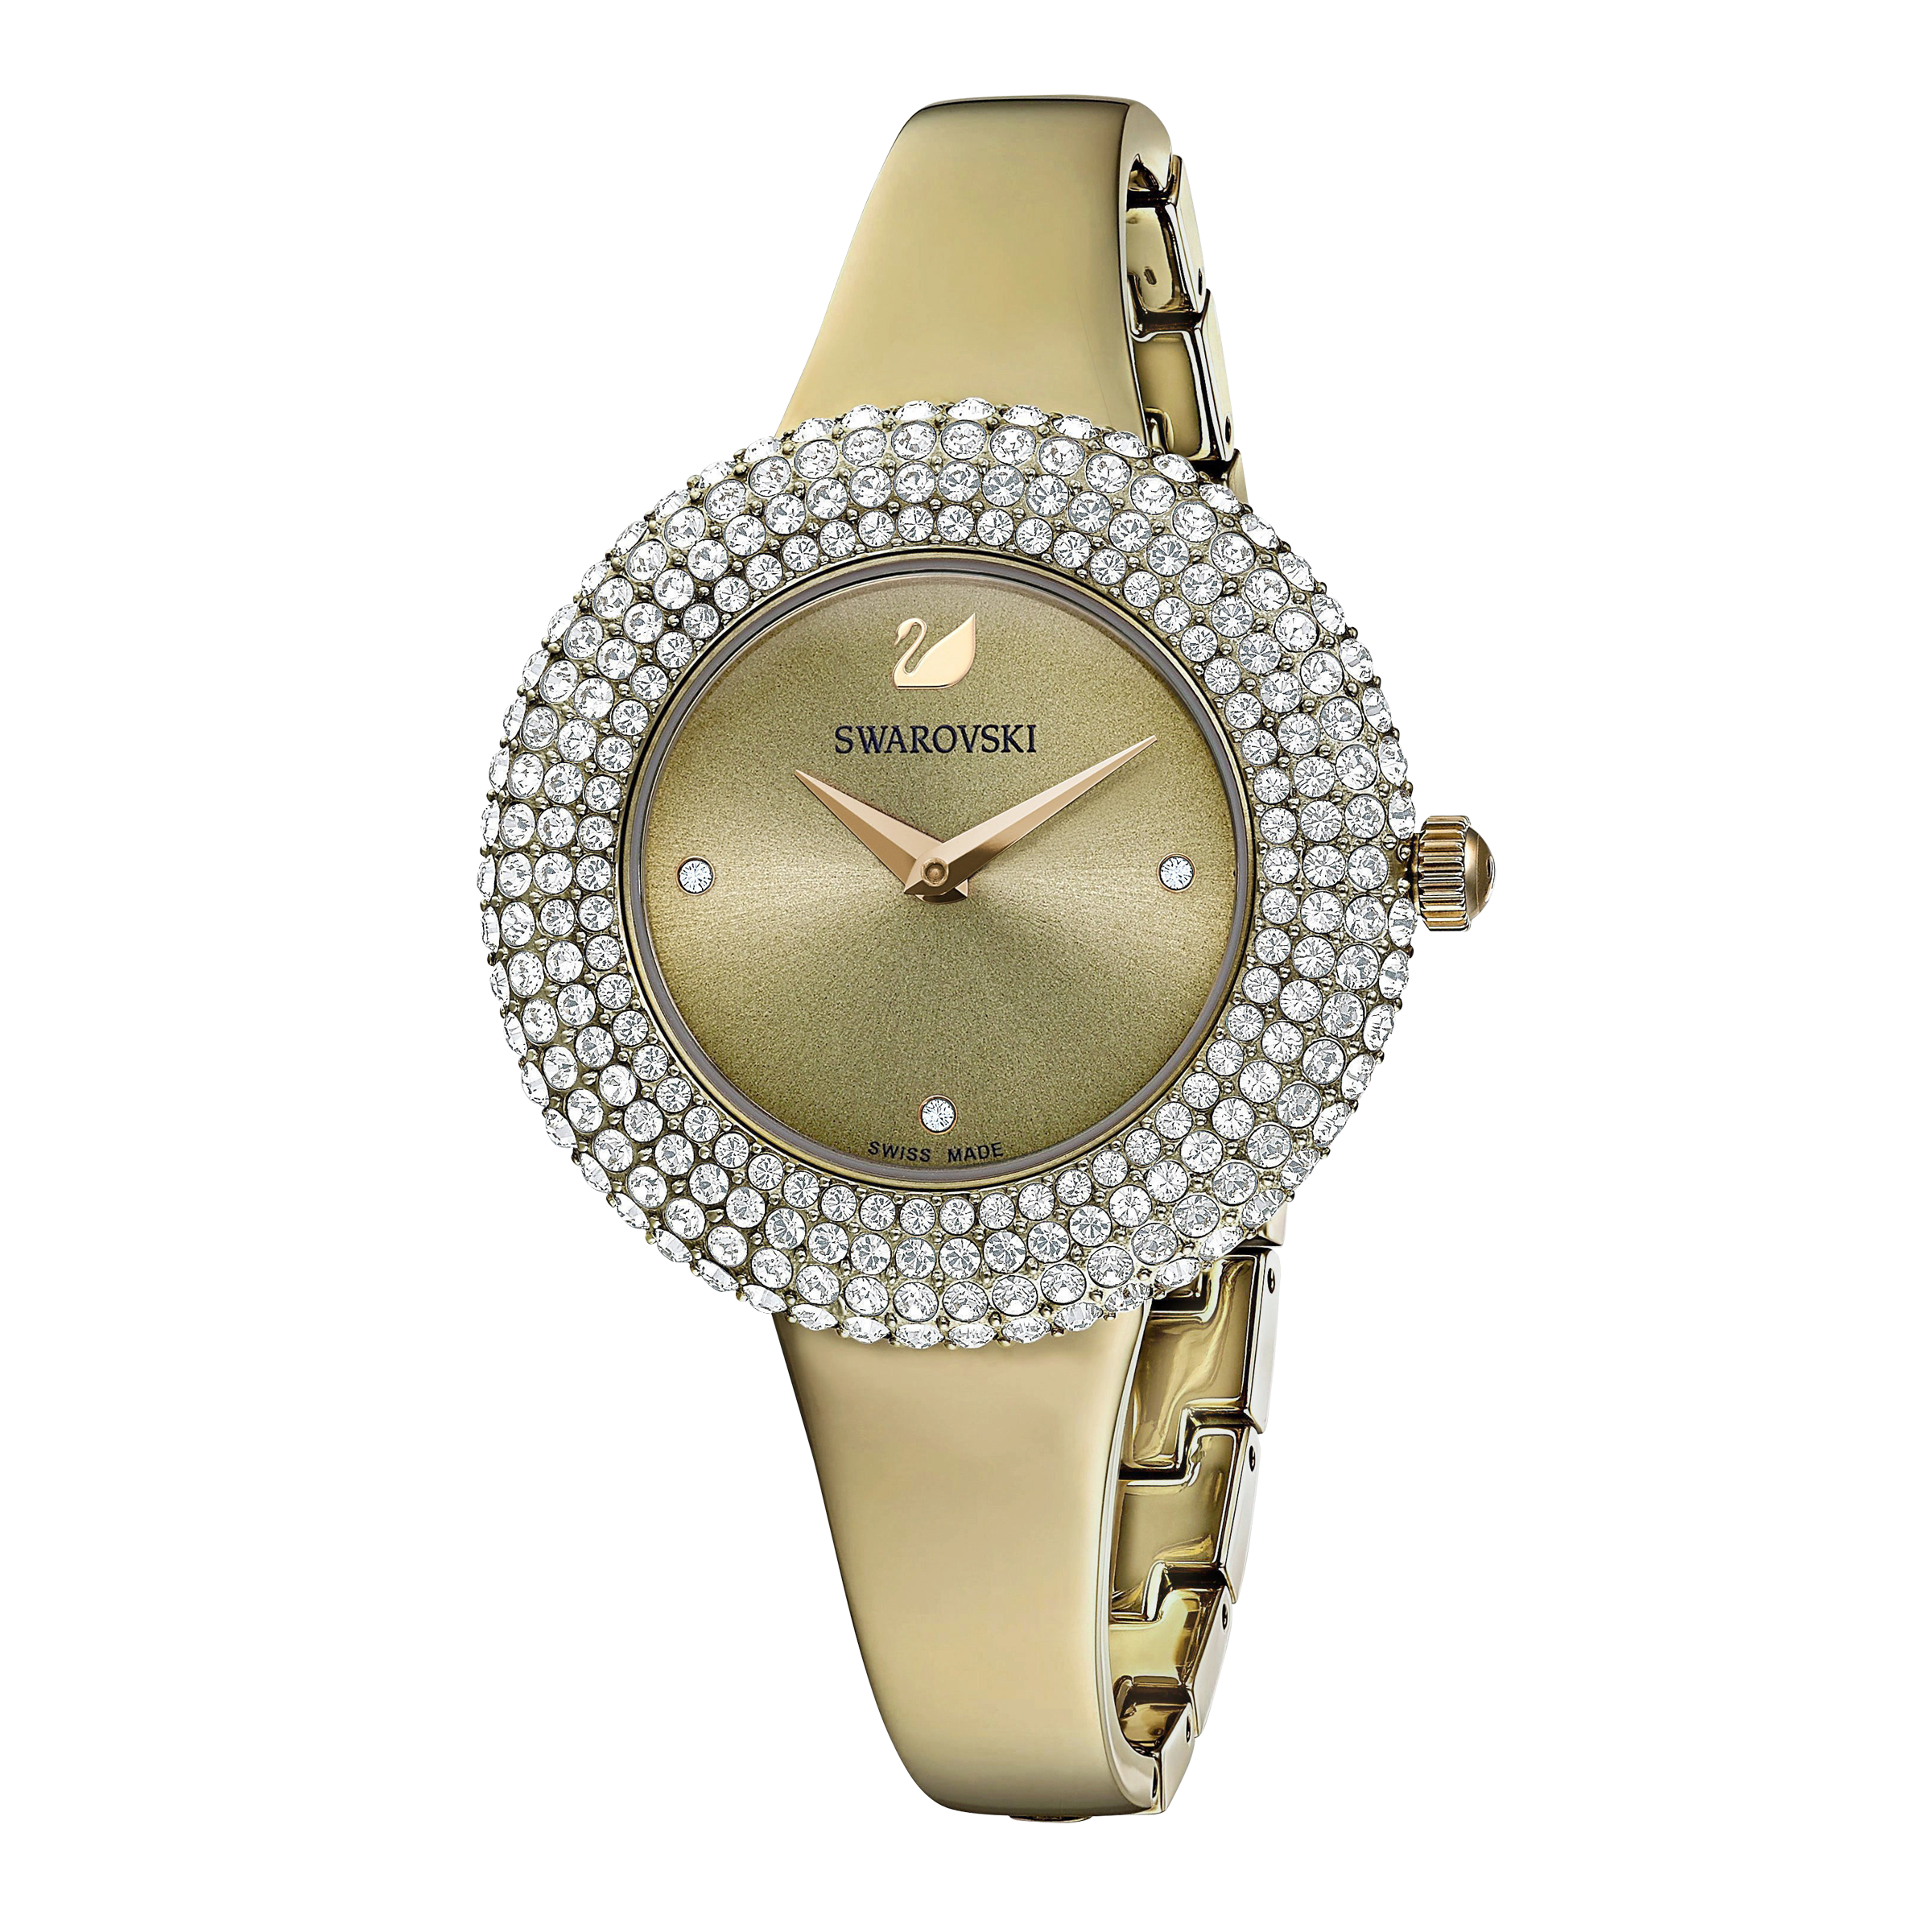 Crystal Rose Watch, Metal Bracelet, Gray, Champagne-gold tone PVD